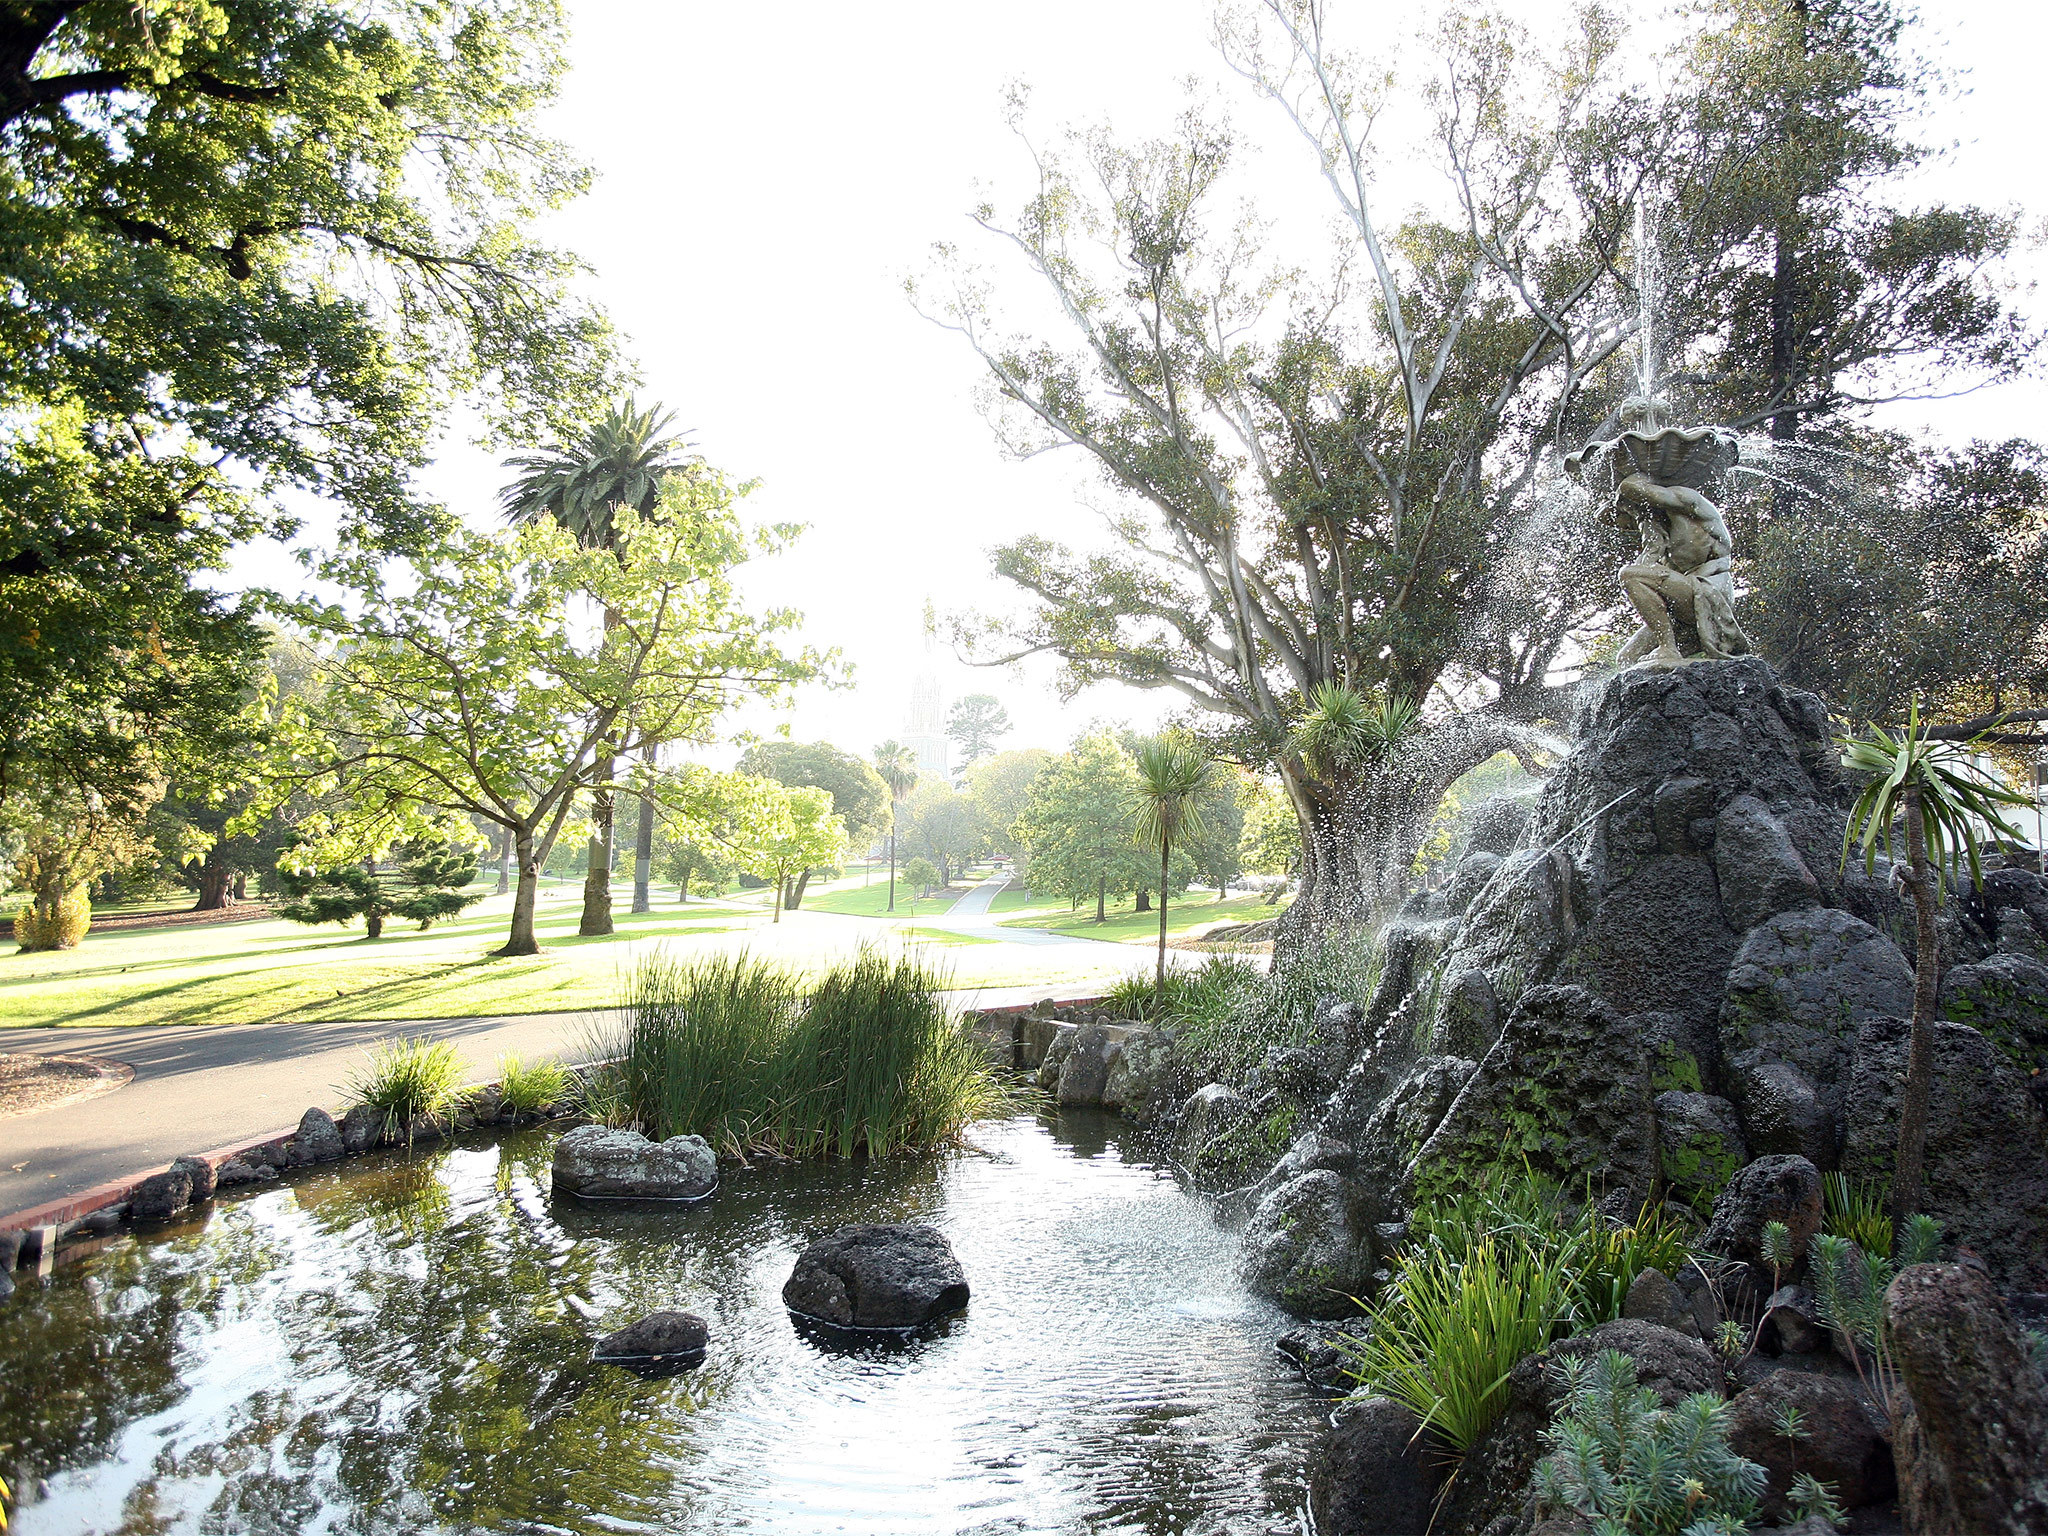 Two Melbourne parks recognised among world's best